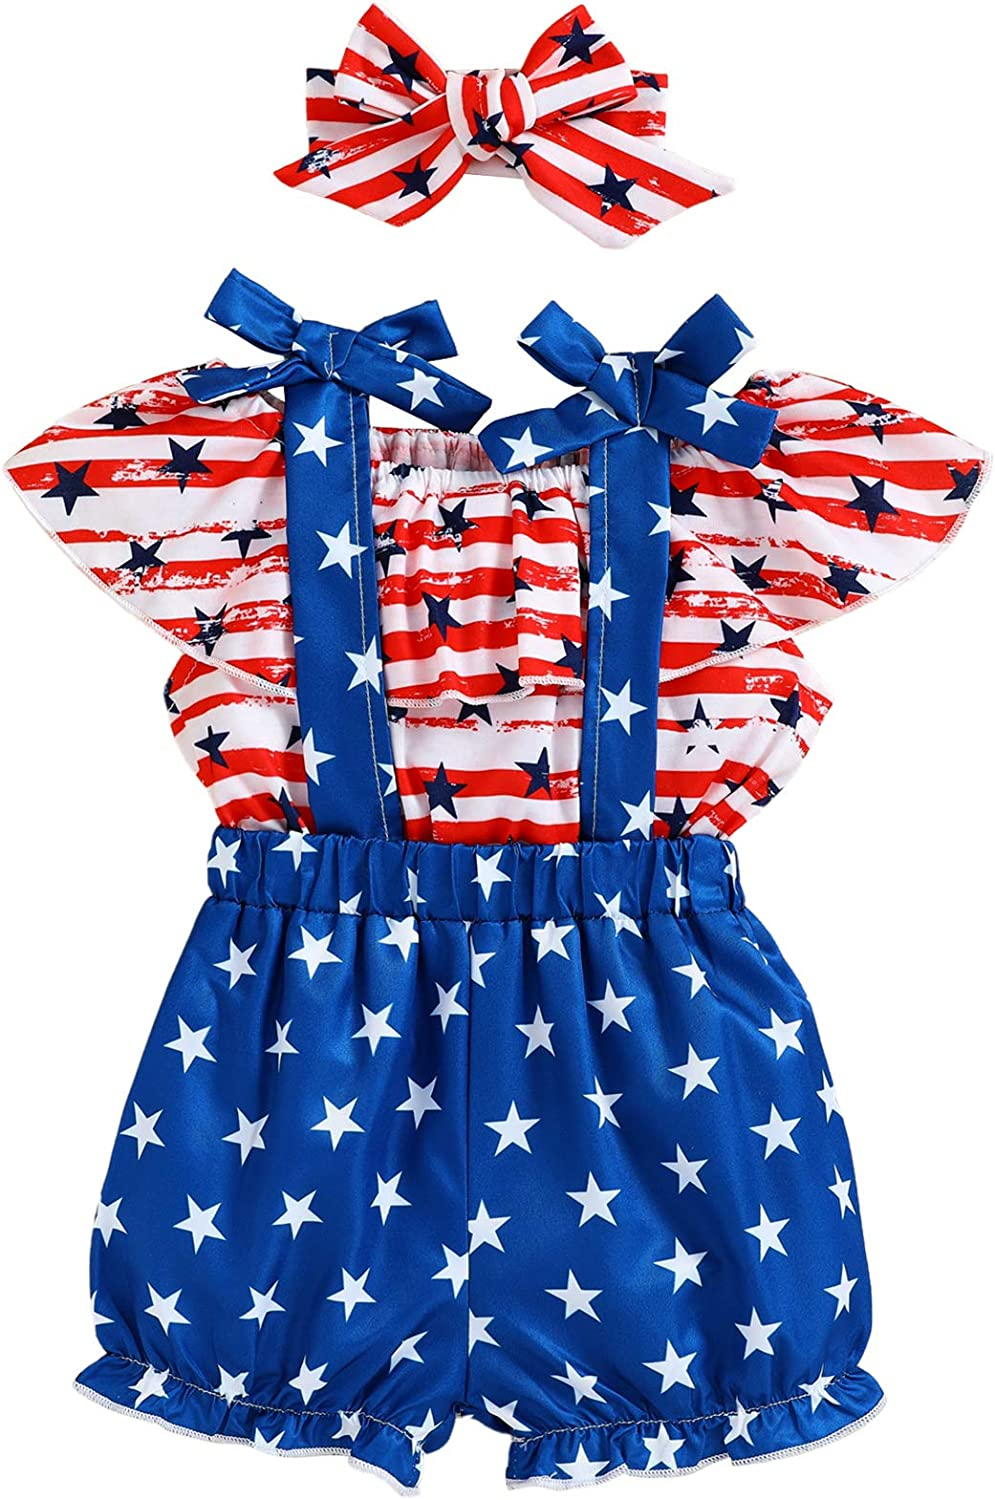 Toddler Baby Girl 4th of July Dress Off-Shoulder Ruffle Dresses American Flag Pattern Clothes Set Outfit